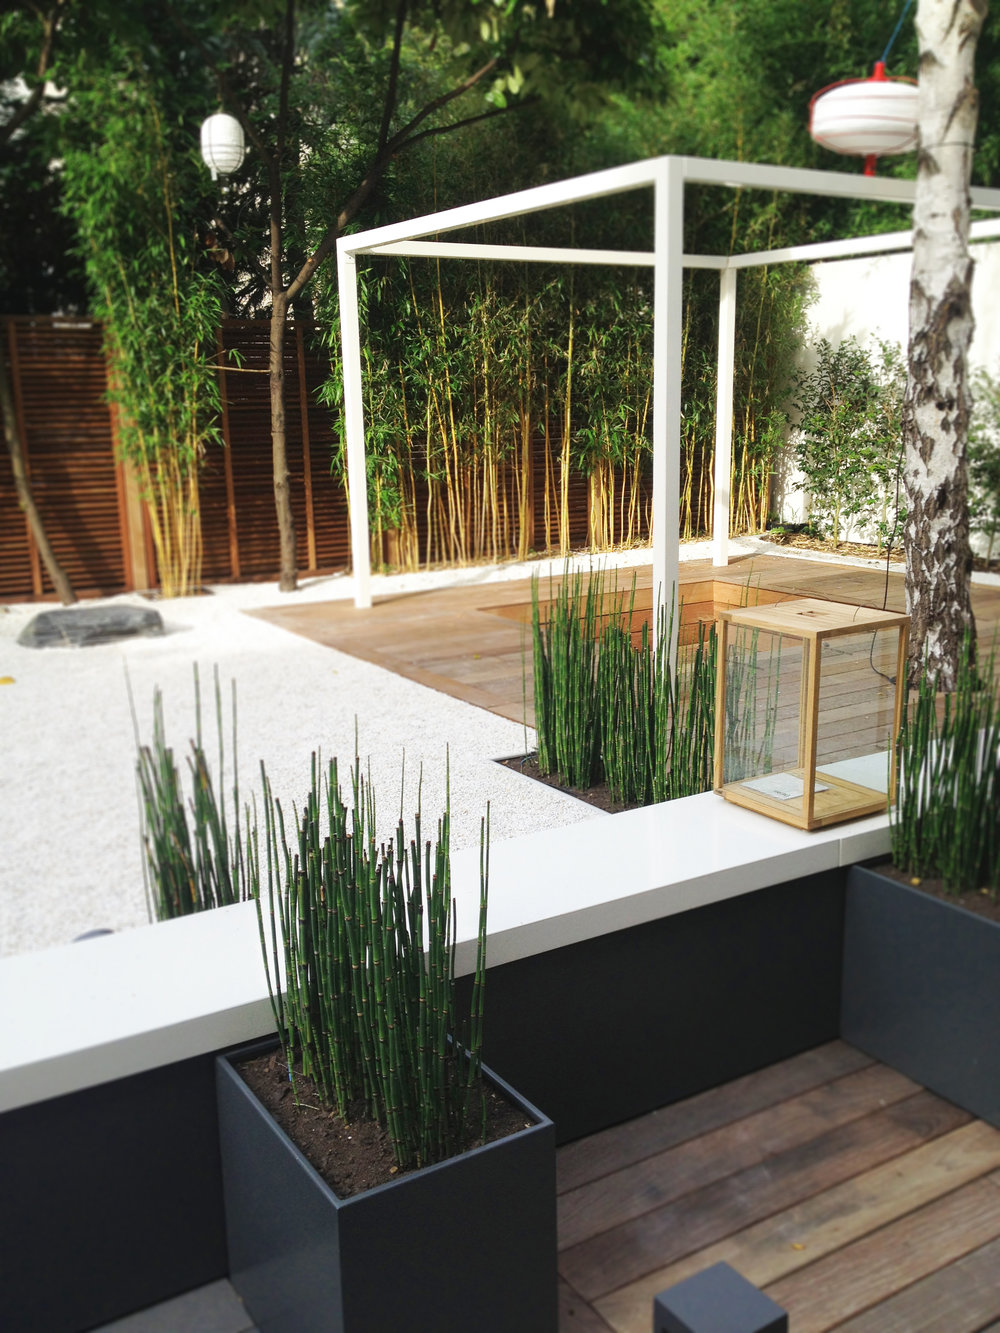 White Garden, Neuilly-sur-Seine   The Zen garden created by the Agency Christophe Gautrand & Associates is a composition, a setting, a landscape that should simply be contemplated to free oneself from everyday life.